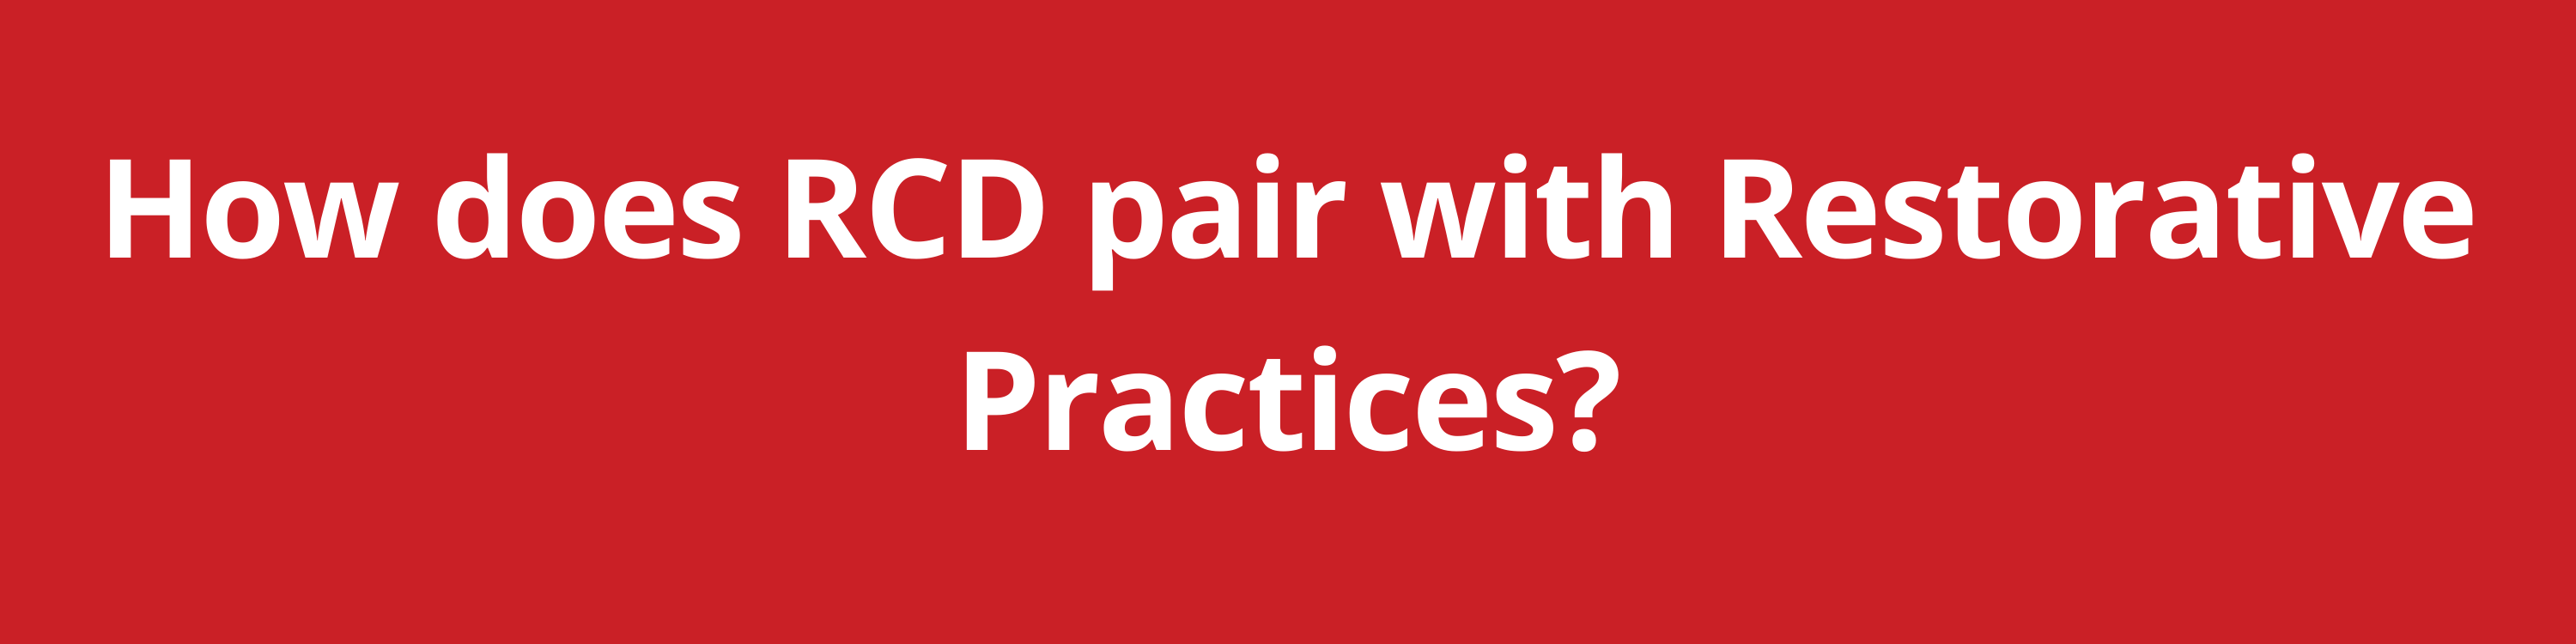 How does RCD pair with Restorative Practices?